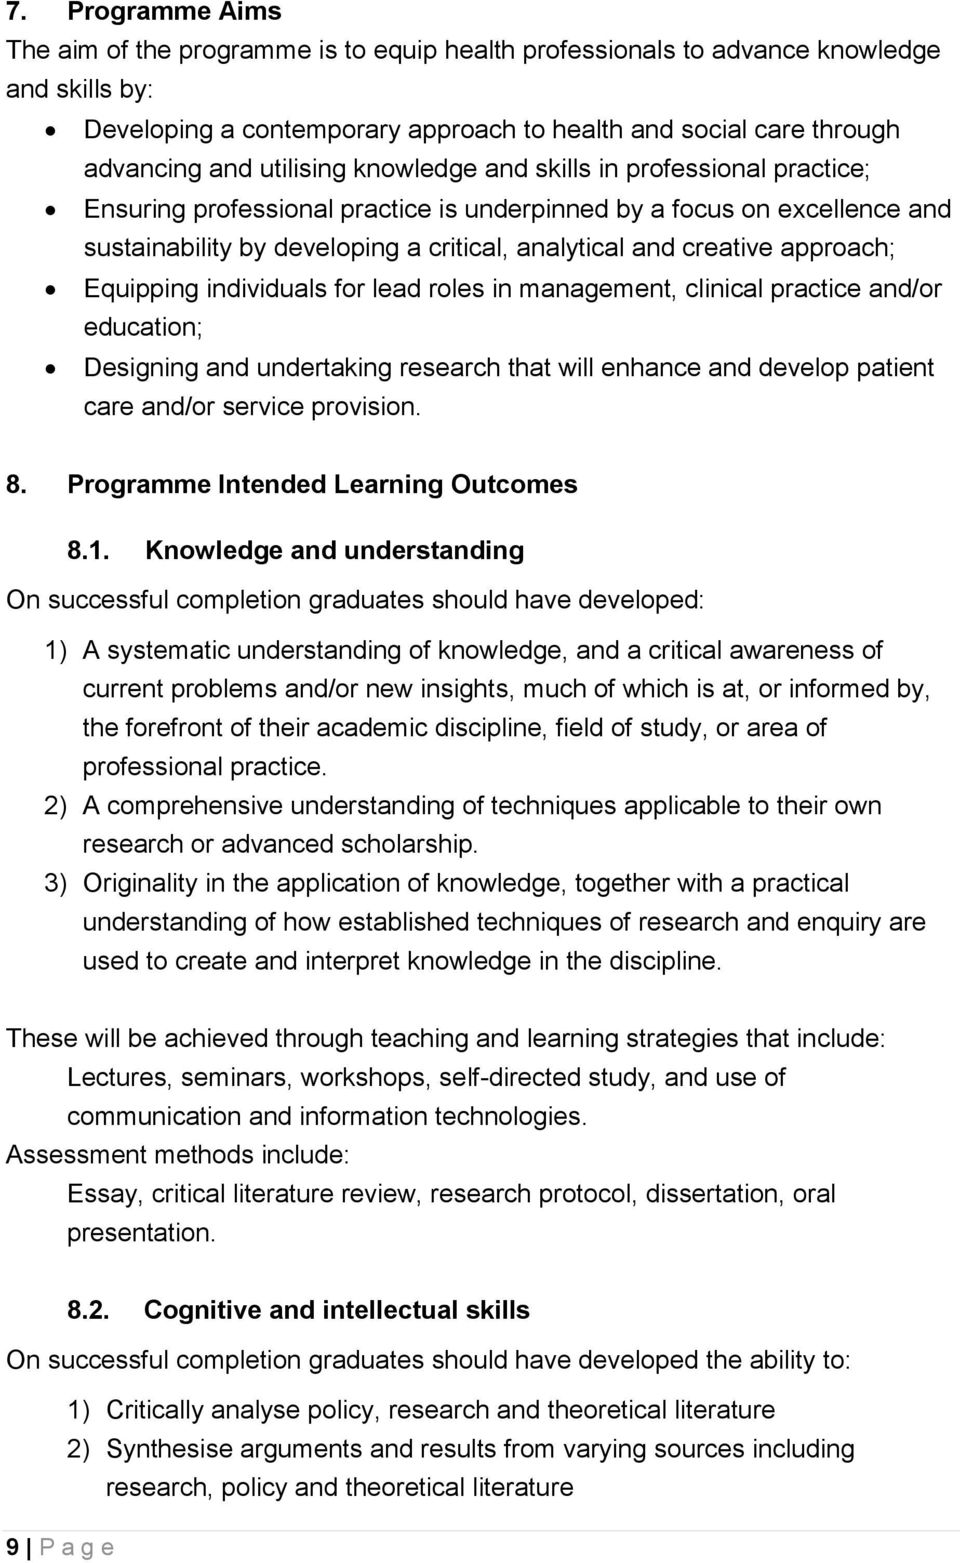 approach; Equipping individuals for lead roles in management, clinical practice and/or education; Designing and undertaking research that will enhance and develop patient care and/or service